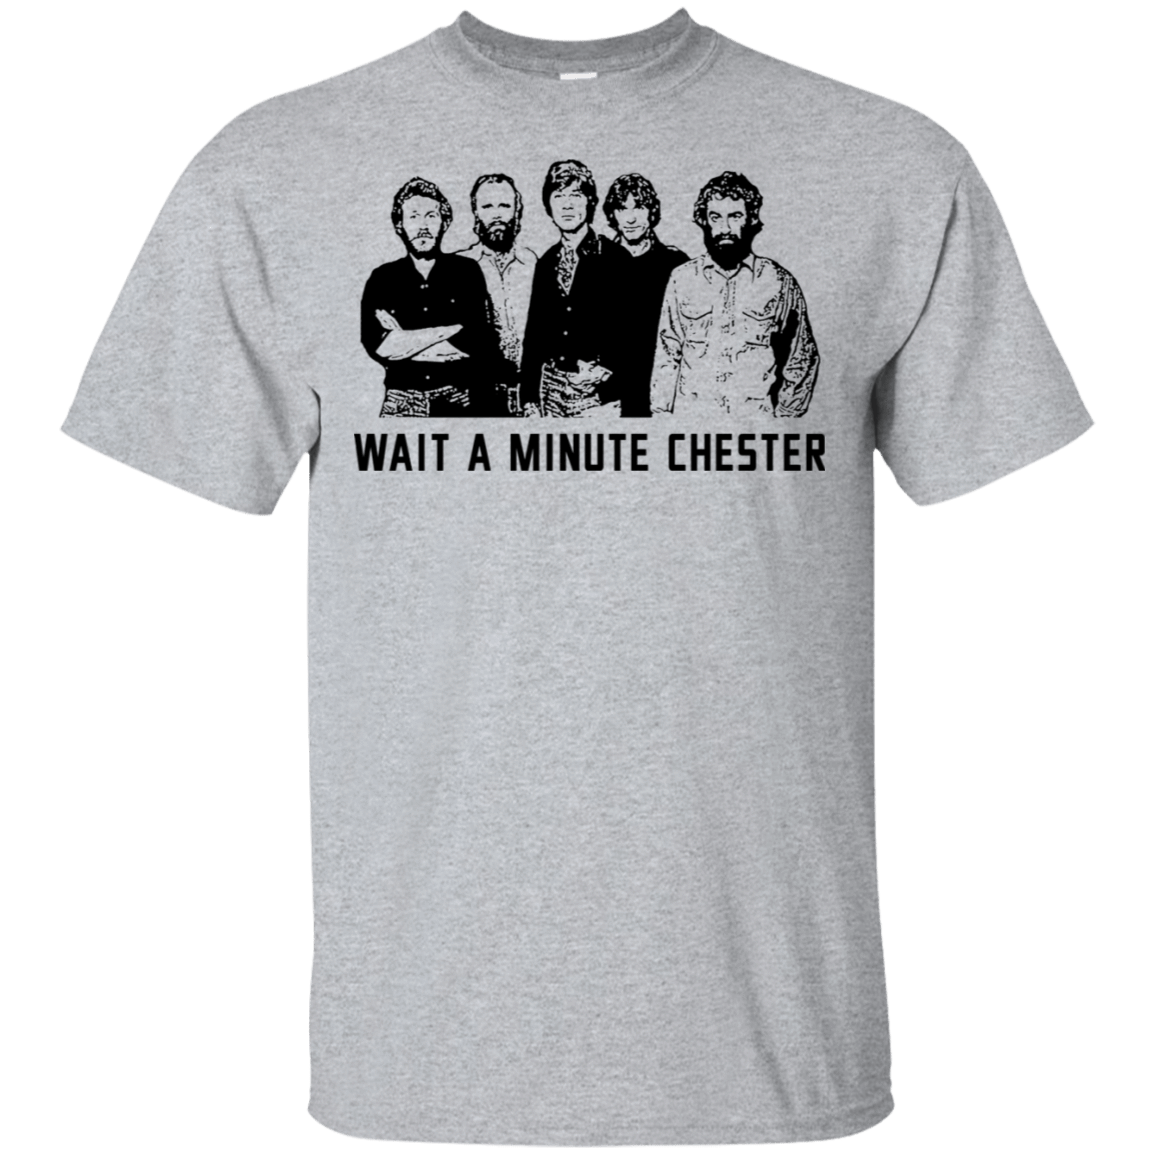 Wait A Minute Chester The Band Version 22-115-73889087-254 - Tee Ript